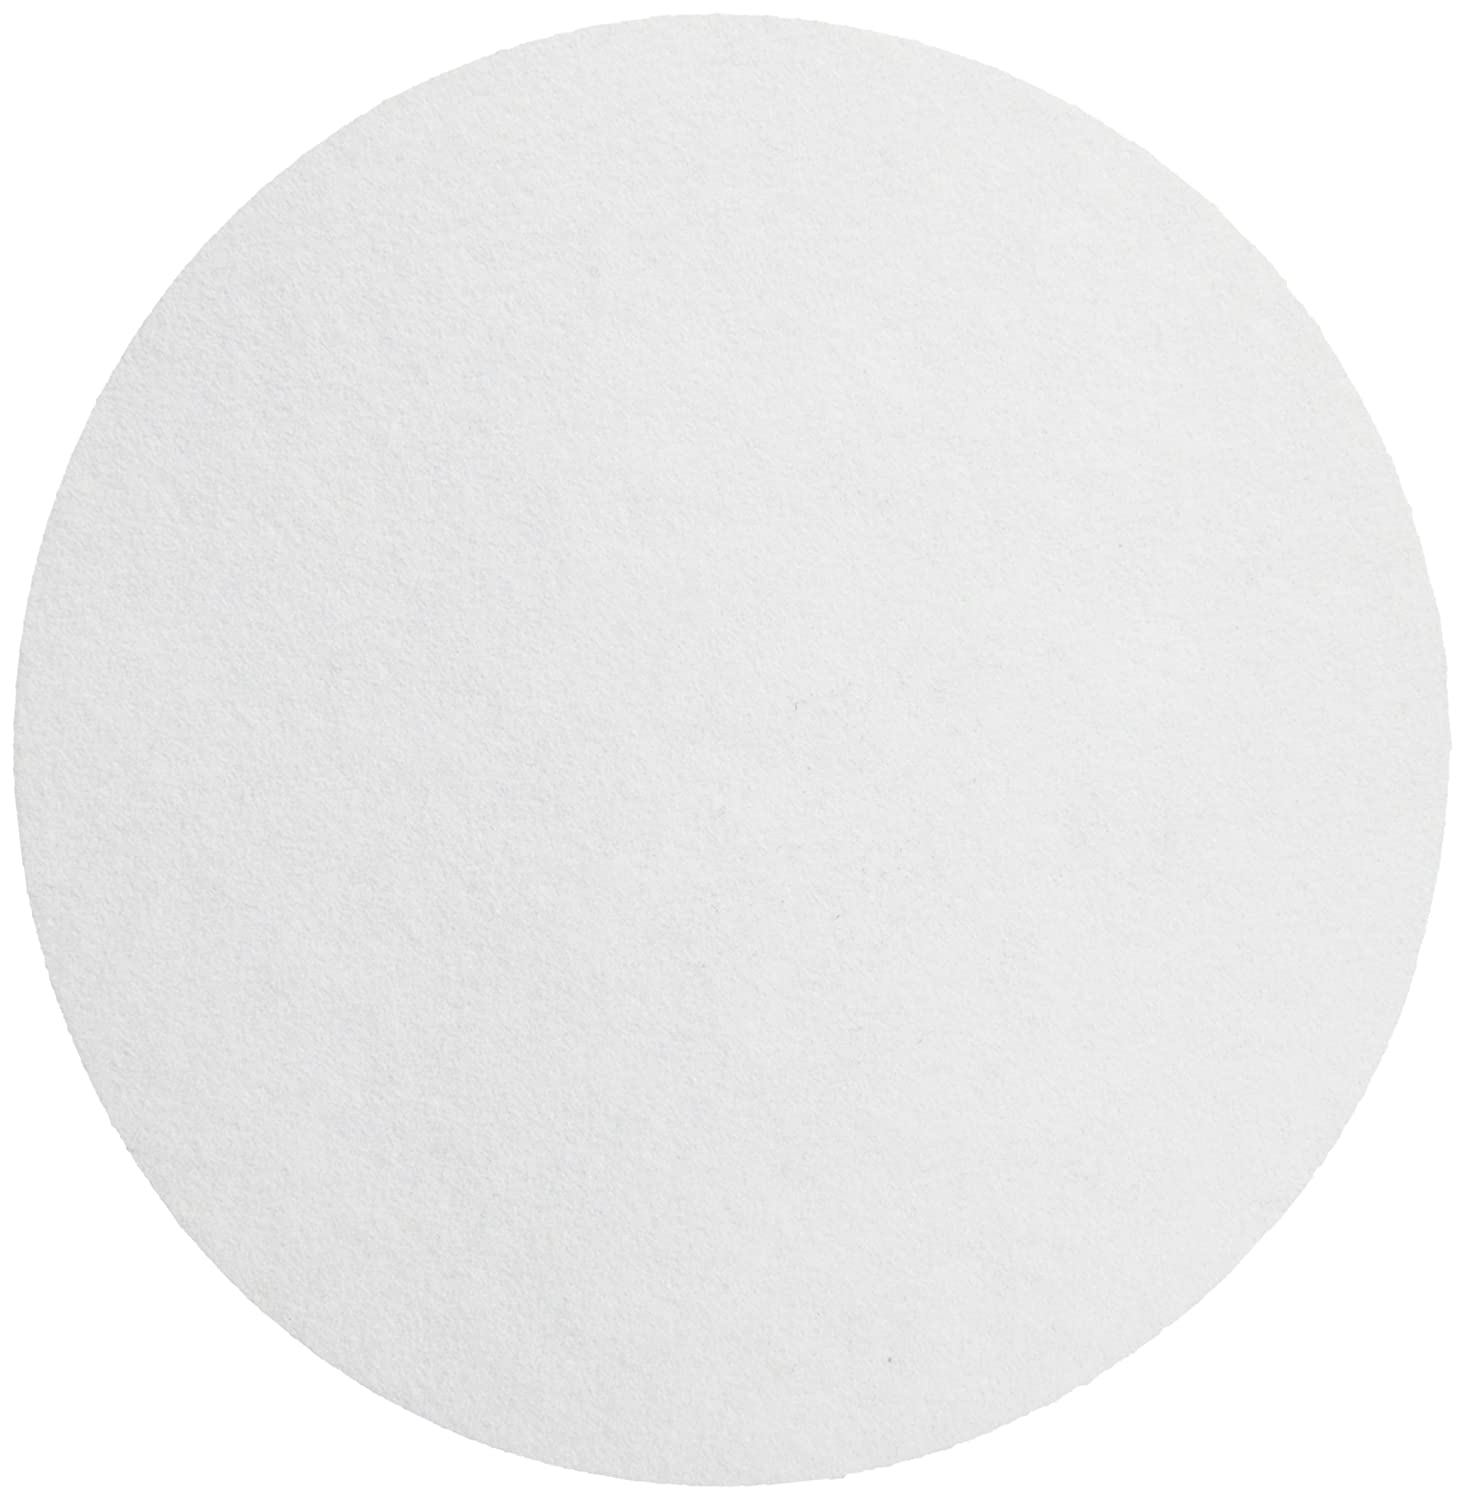 Limited time trial price Whatman 2200-110 1PS Phase Separator Filter Paper 110mm Diamete shipfree